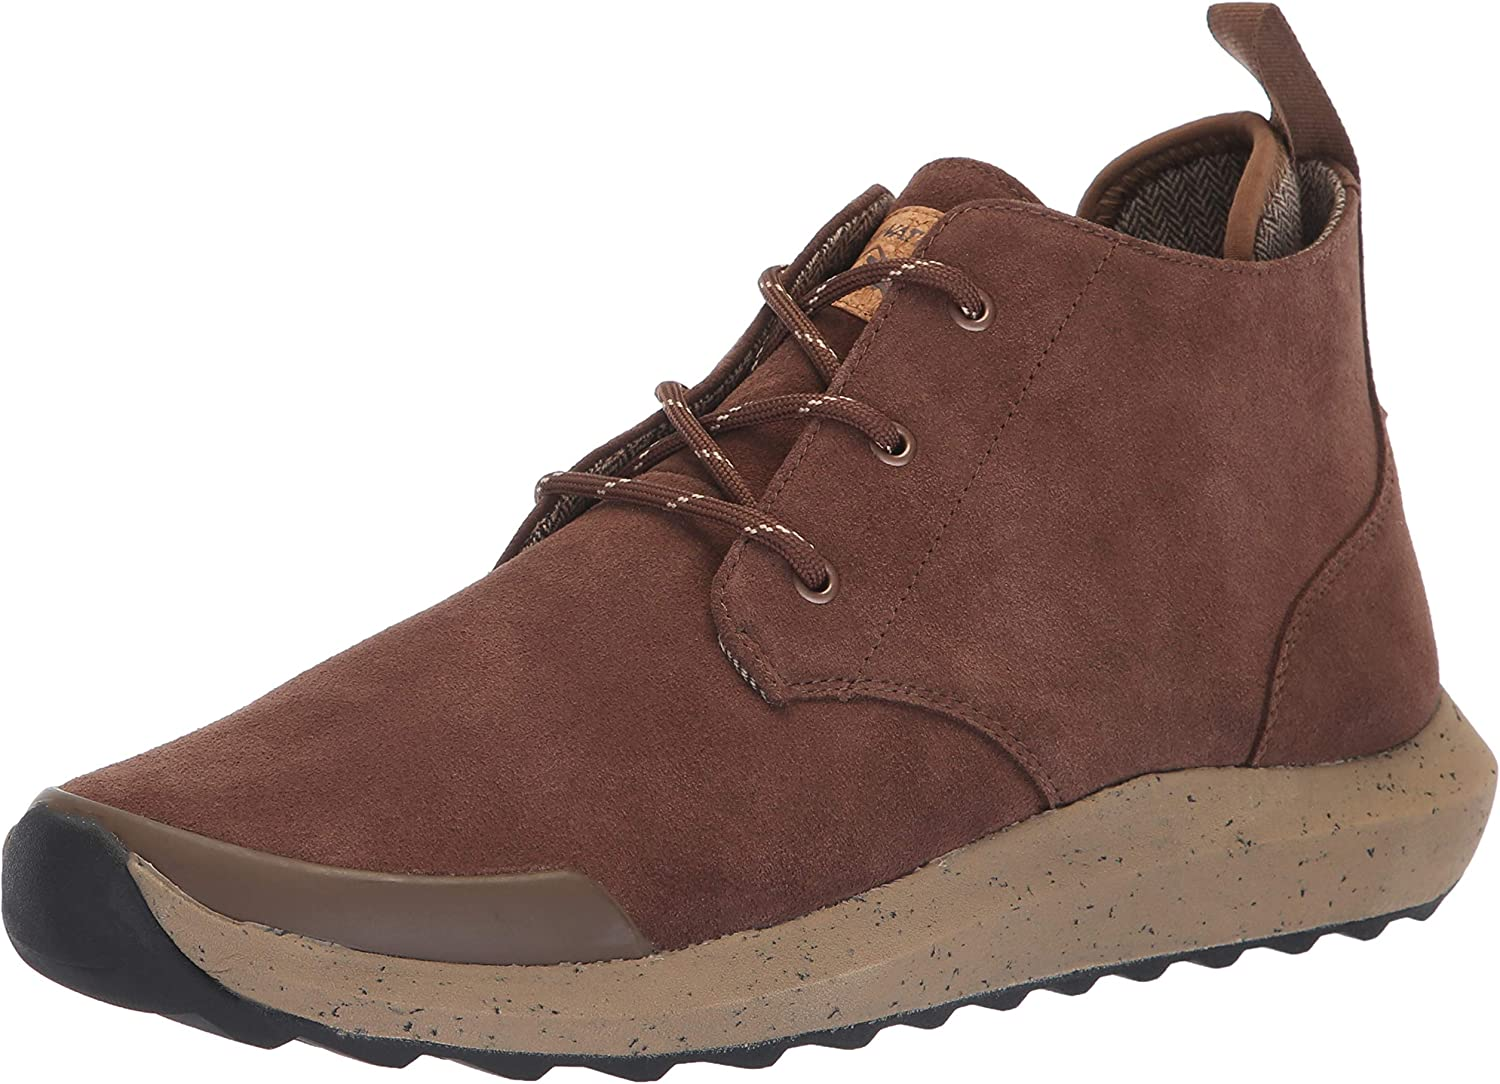 Freewaters Mens Freeland Premium Suede Outdoor Casual Dress Boot W Arch Support & 3m Scotchgard Chukka Boot